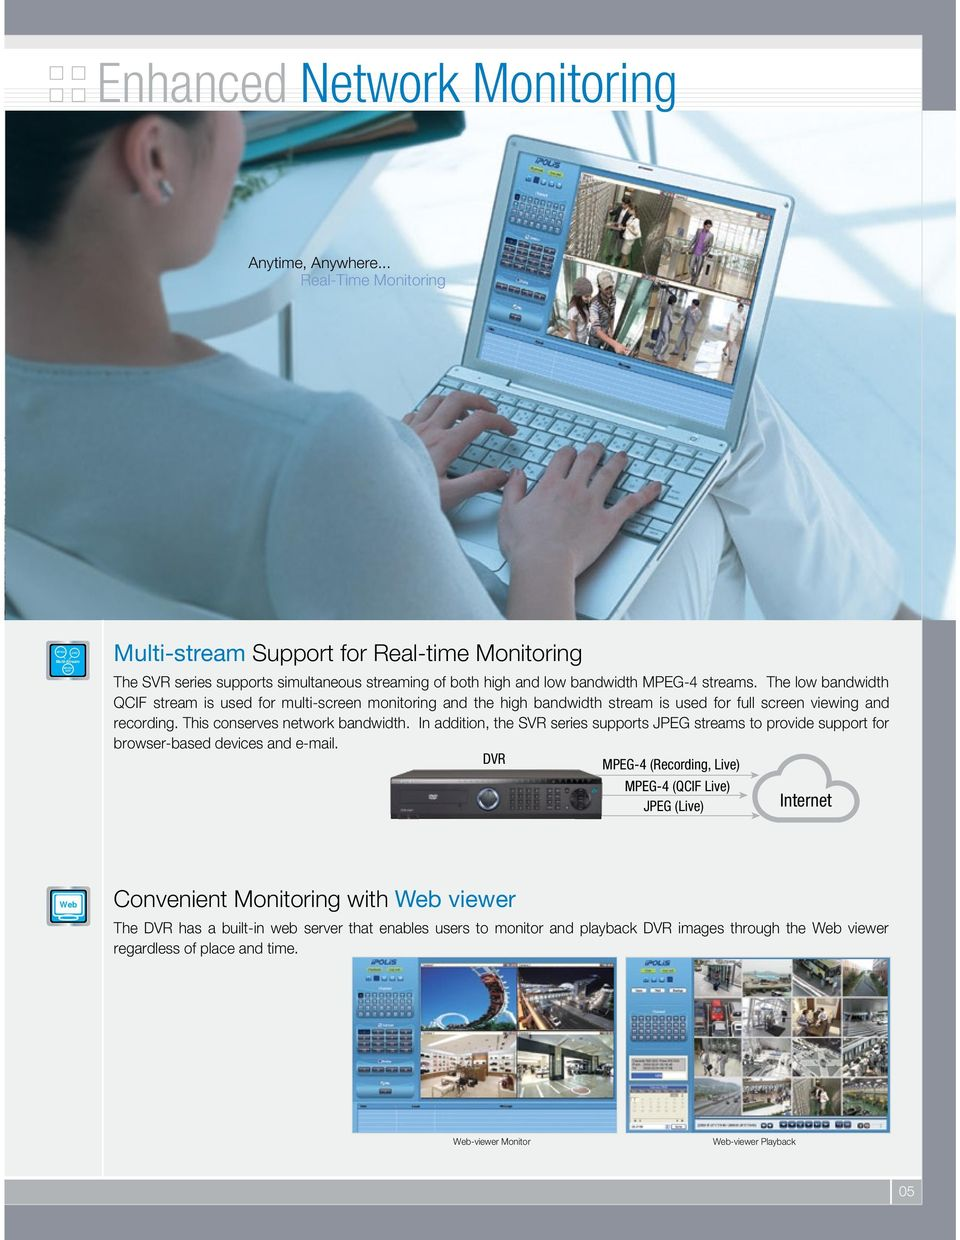 The low bandwidth QCIF stream is used for multi-screen monitoring and the high bandwidth stream is used for full screen viewing and recording. This conserves network bandwidth.